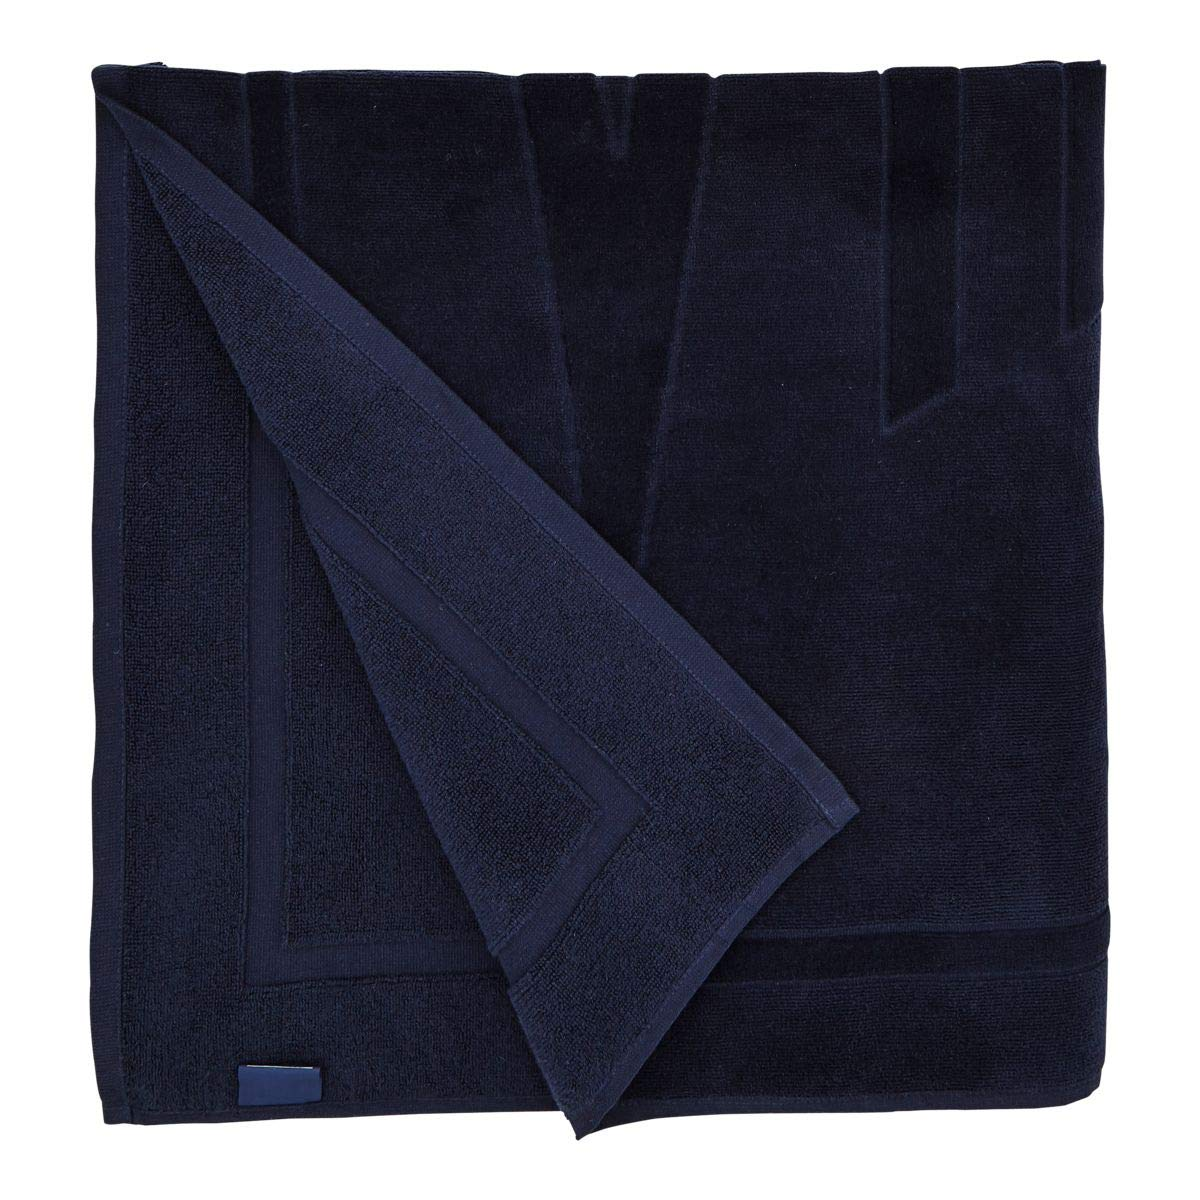 Vilebrequin Vilebrequin Vilebrequin - Unisex - Solid Jacquard-Strandtuch aus Frottee c2e428